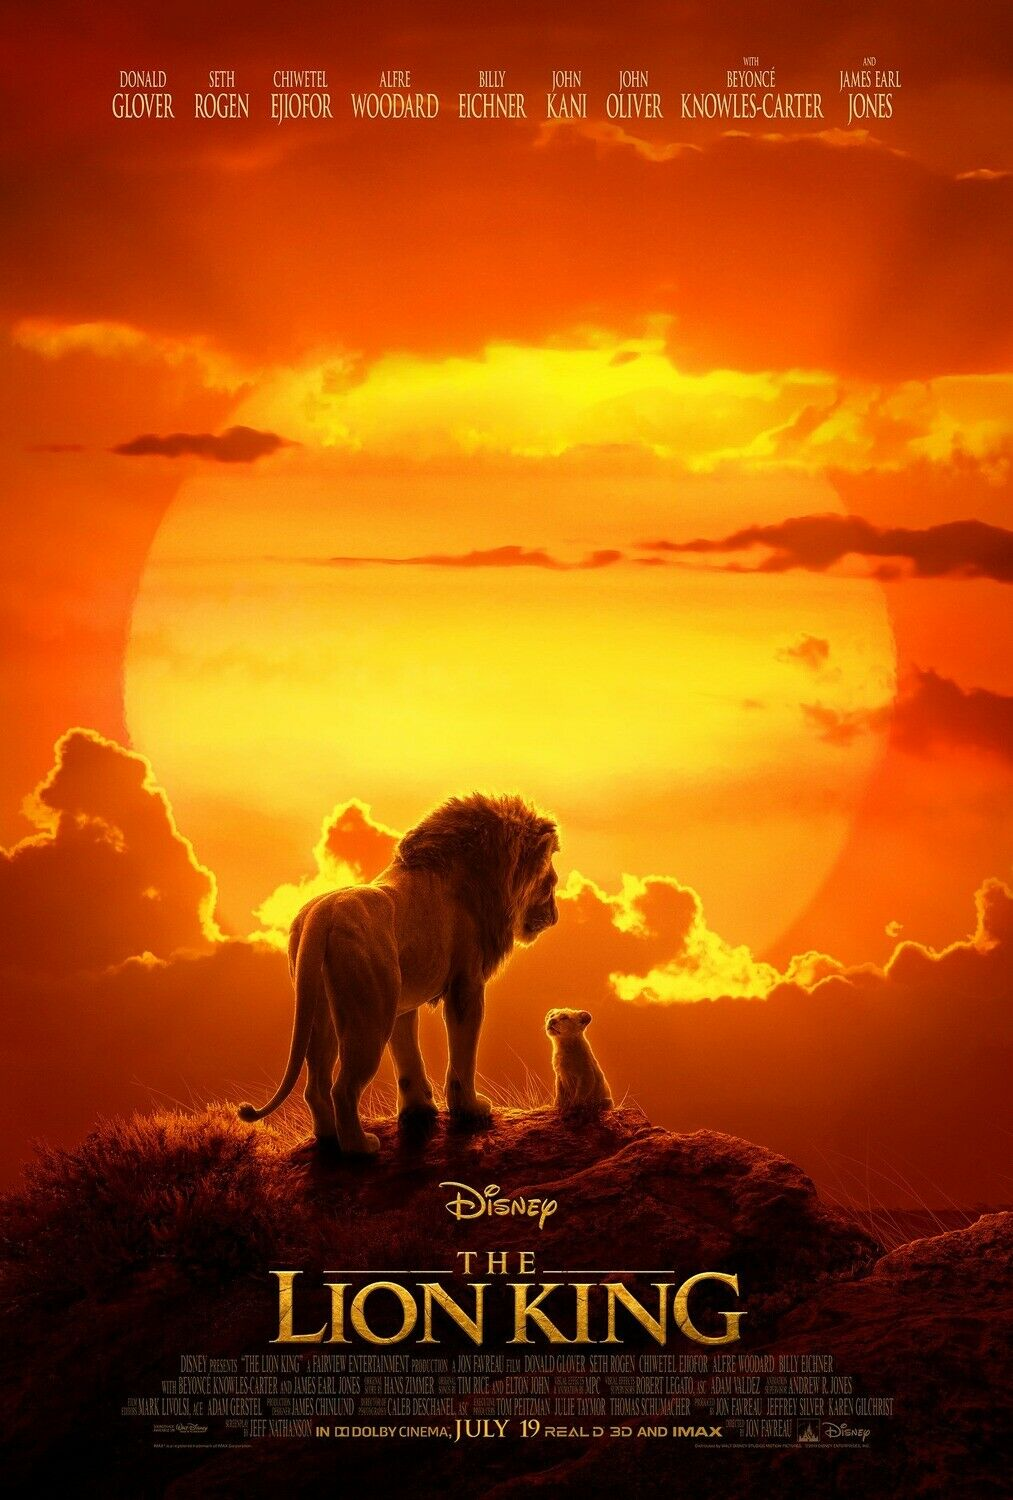 Details About The Lion King Art Poster 48x32 40x27 36x24 Movie Film 2019 Print Silk